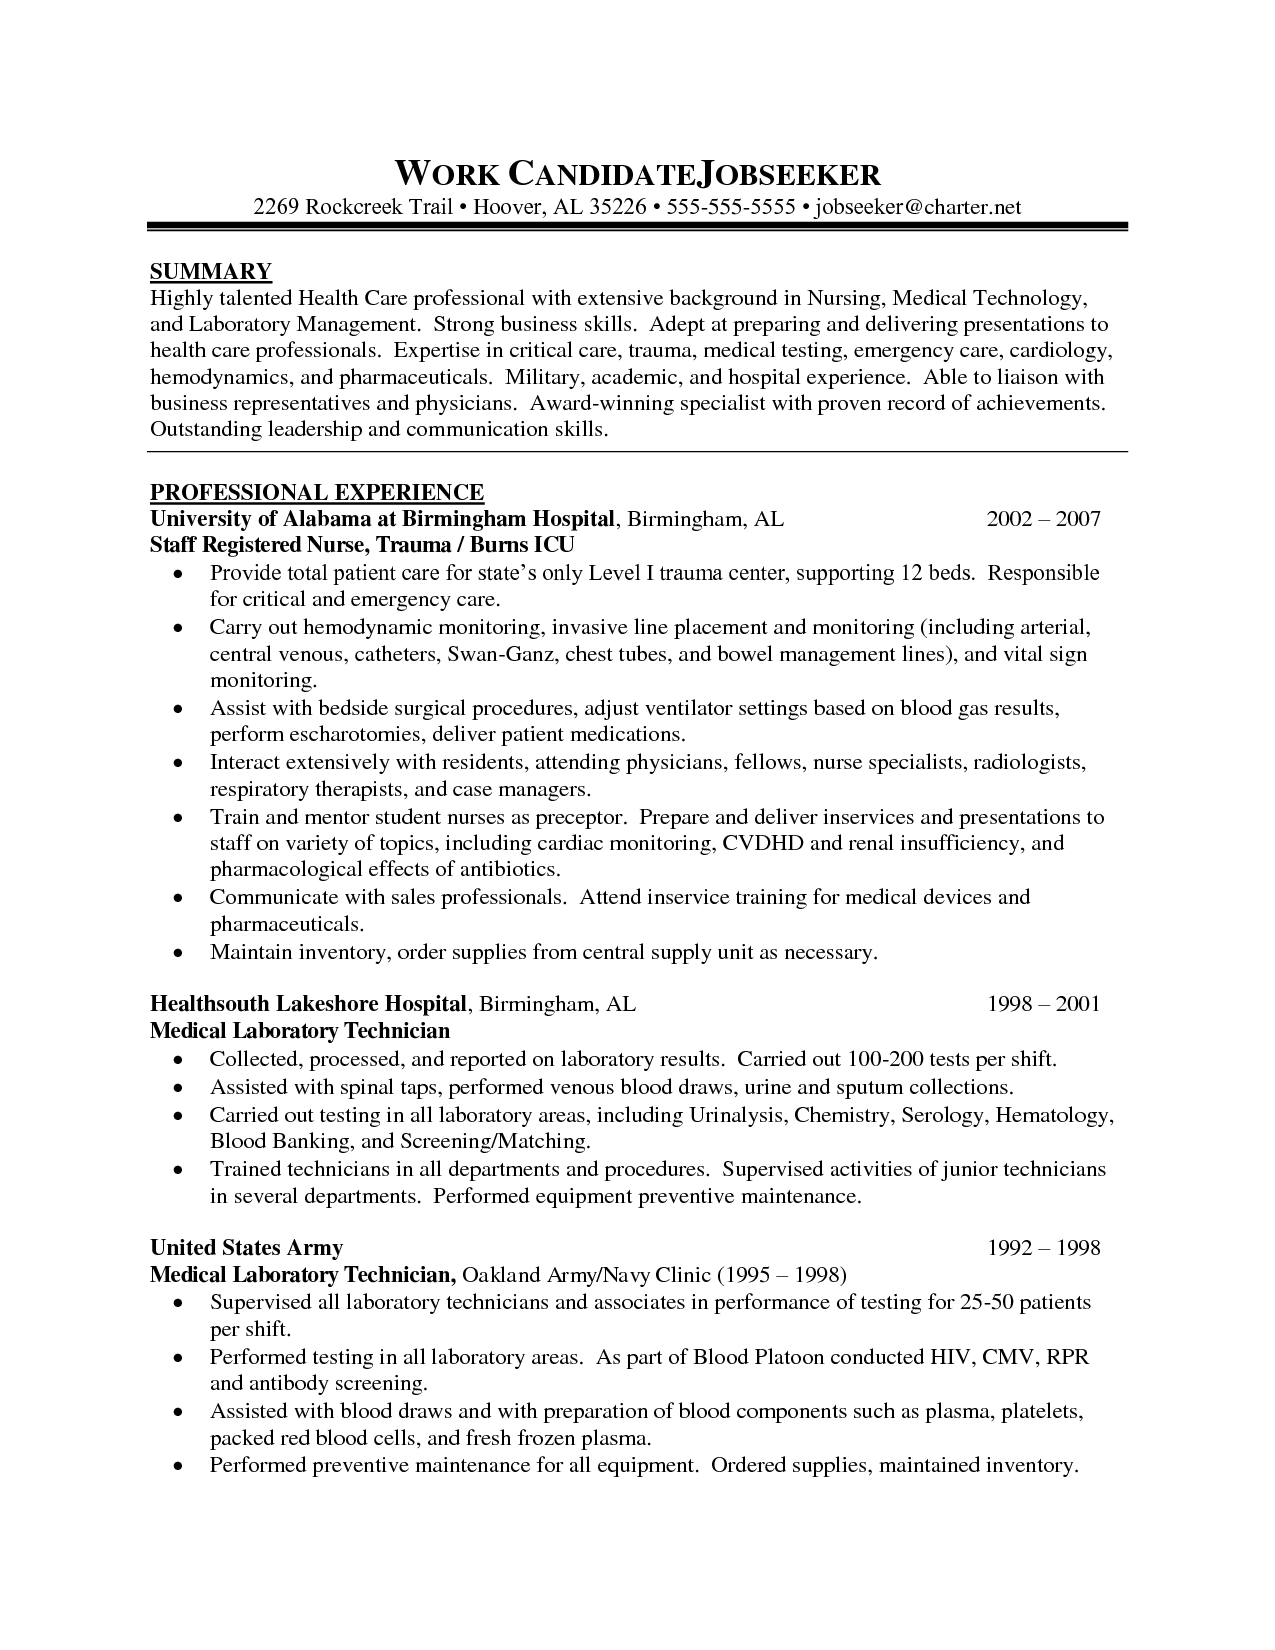 Example Of Military Resume New Resume Examples Nursing Student  Pinterest  Professional Resume .